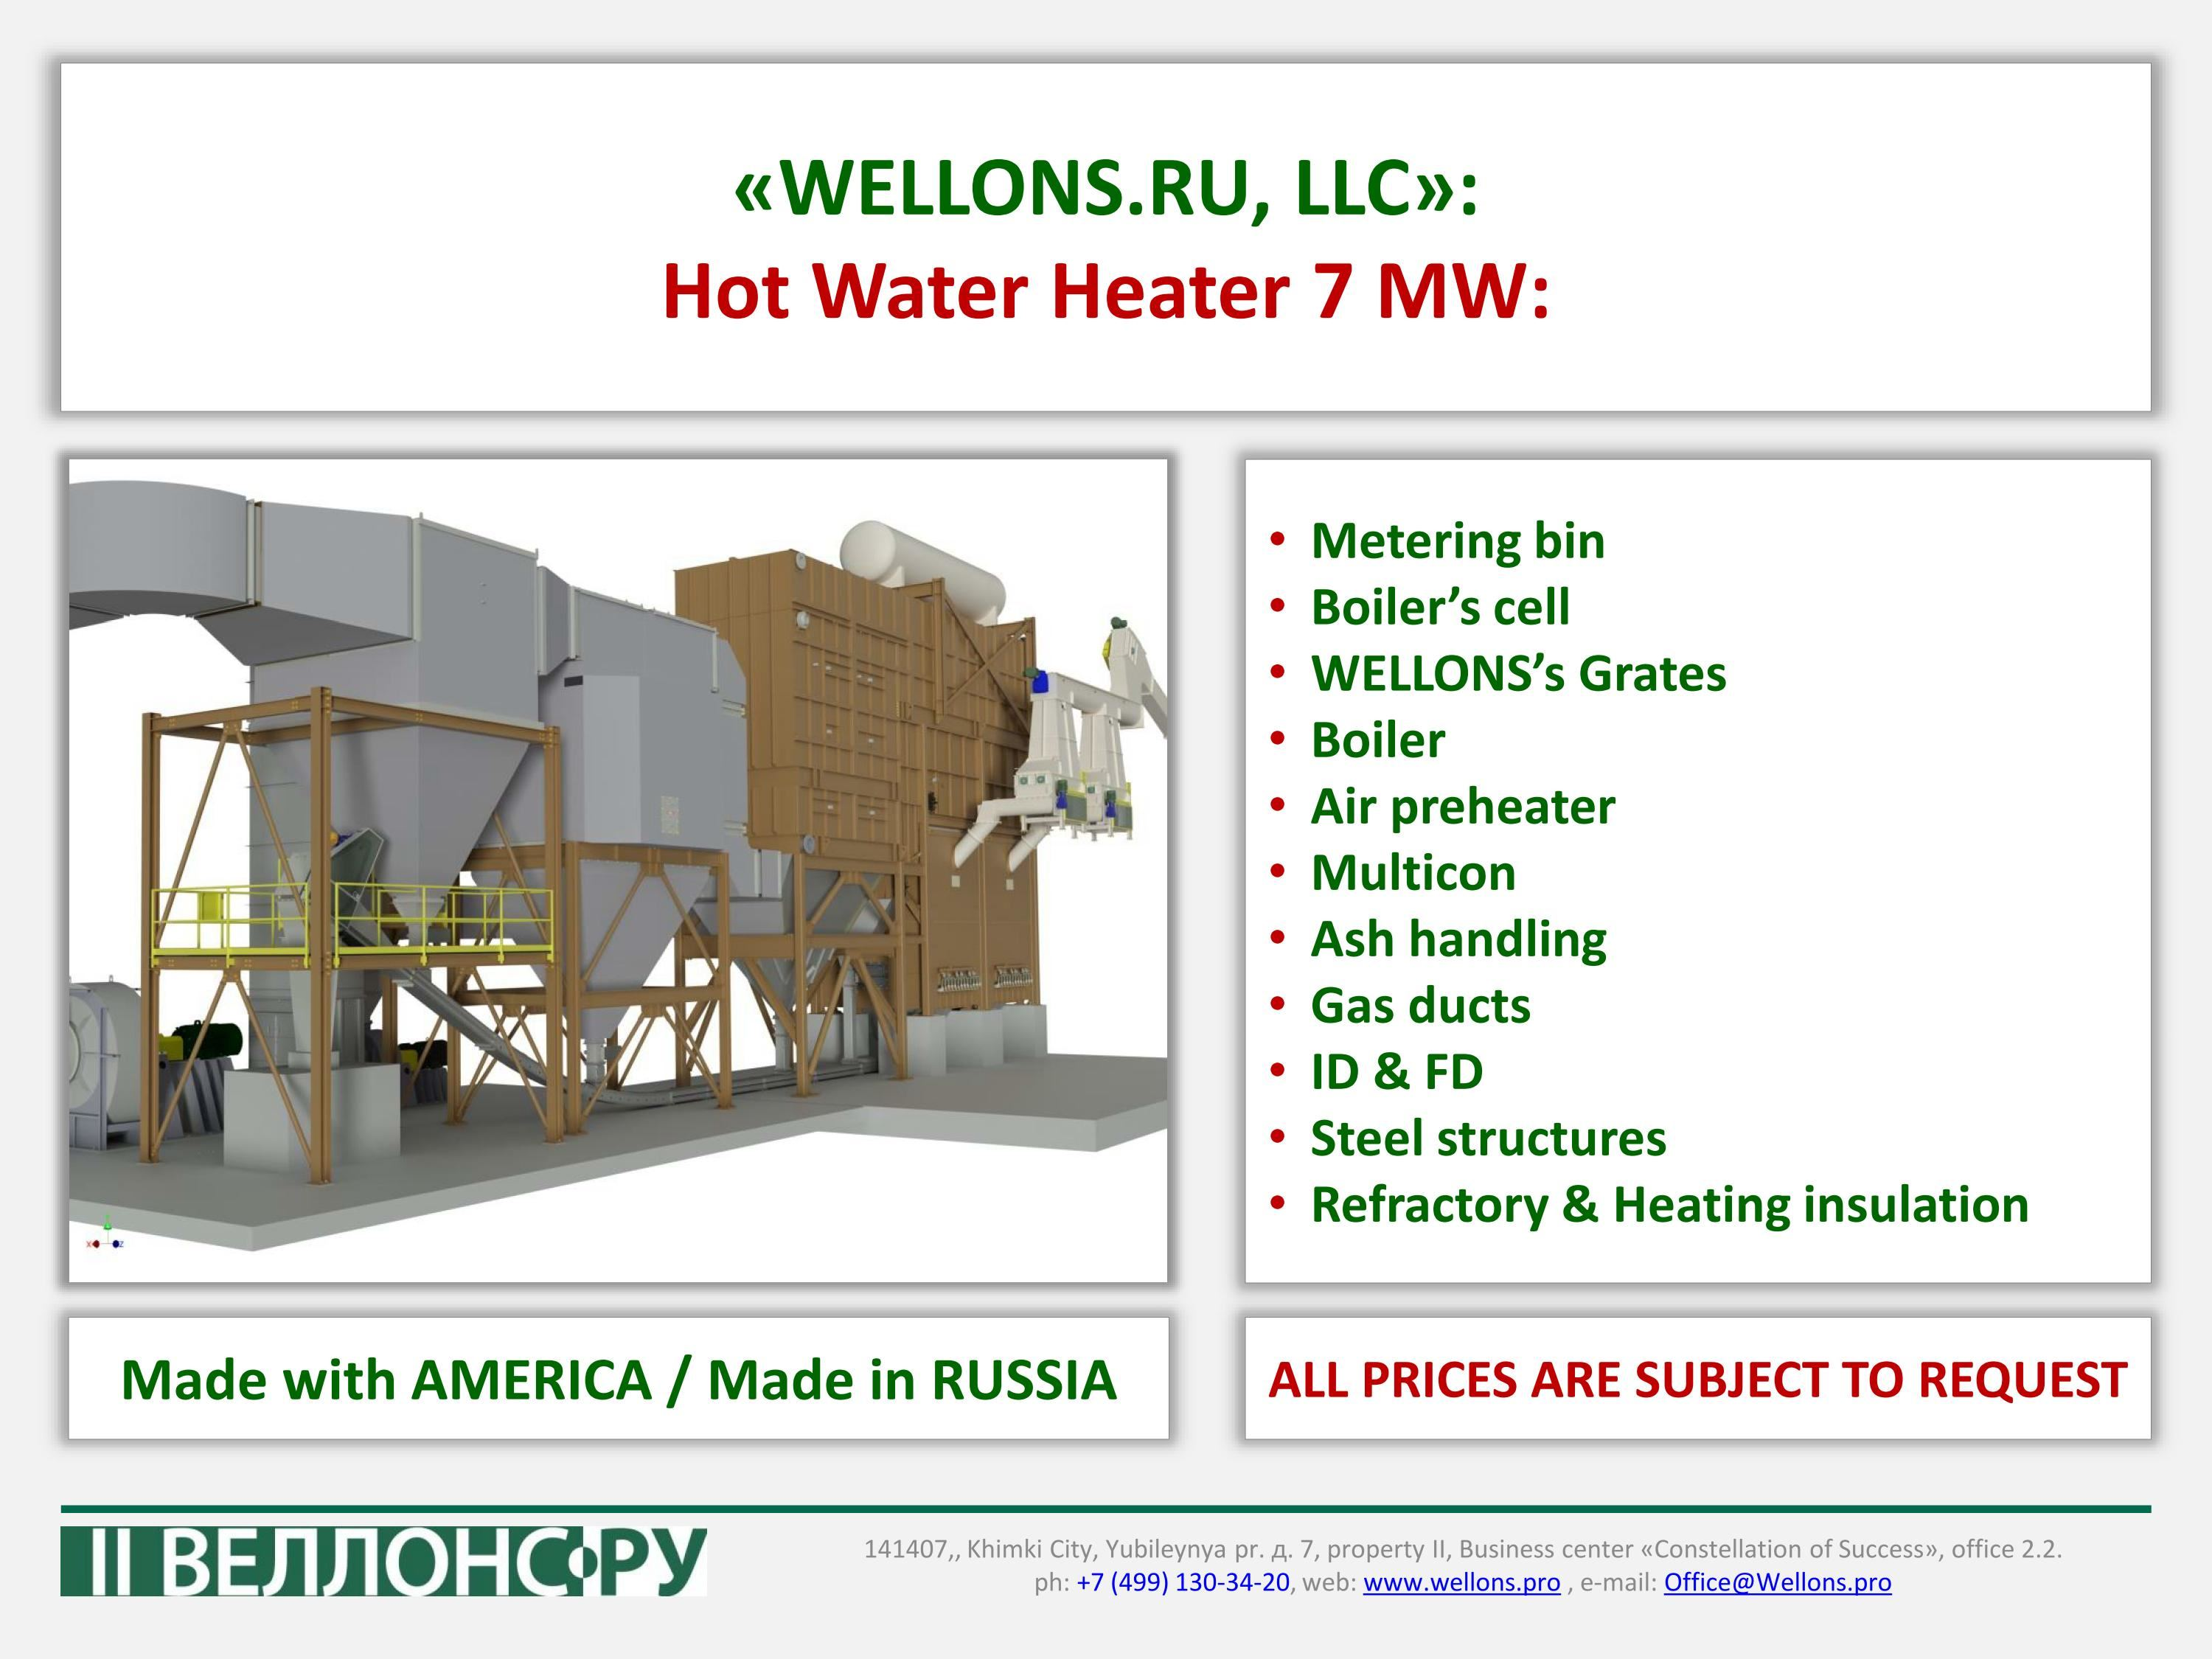 Operation principle and design features of Wellons boilers | Wellons.PRO